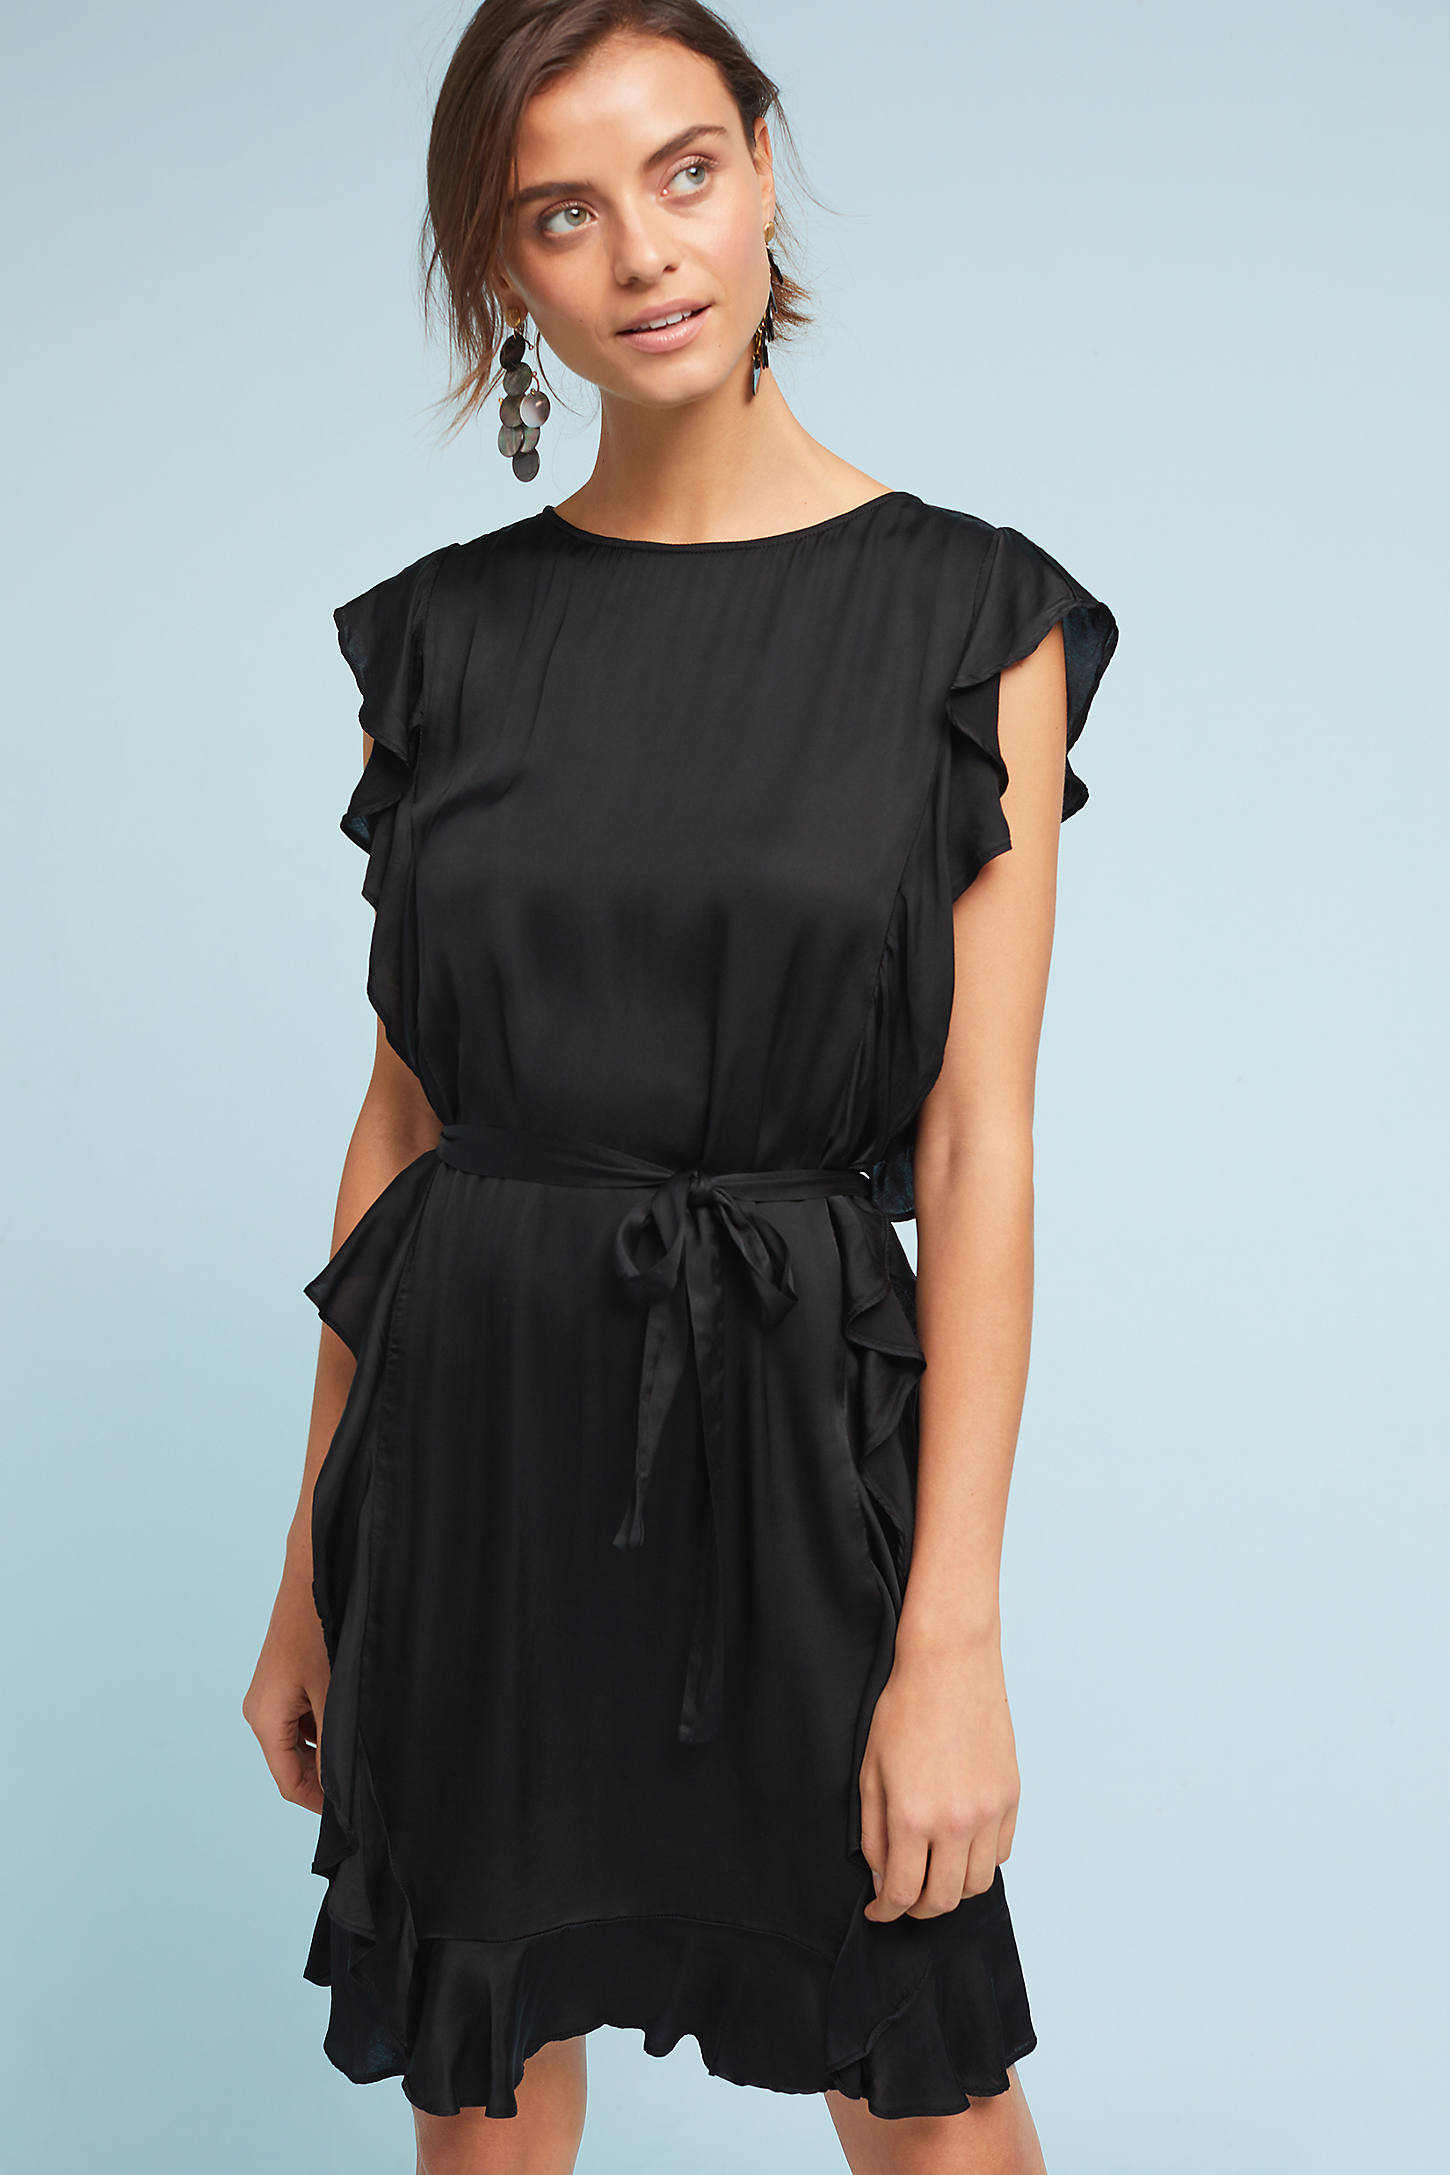 Ruffled & Belted Shift Dress